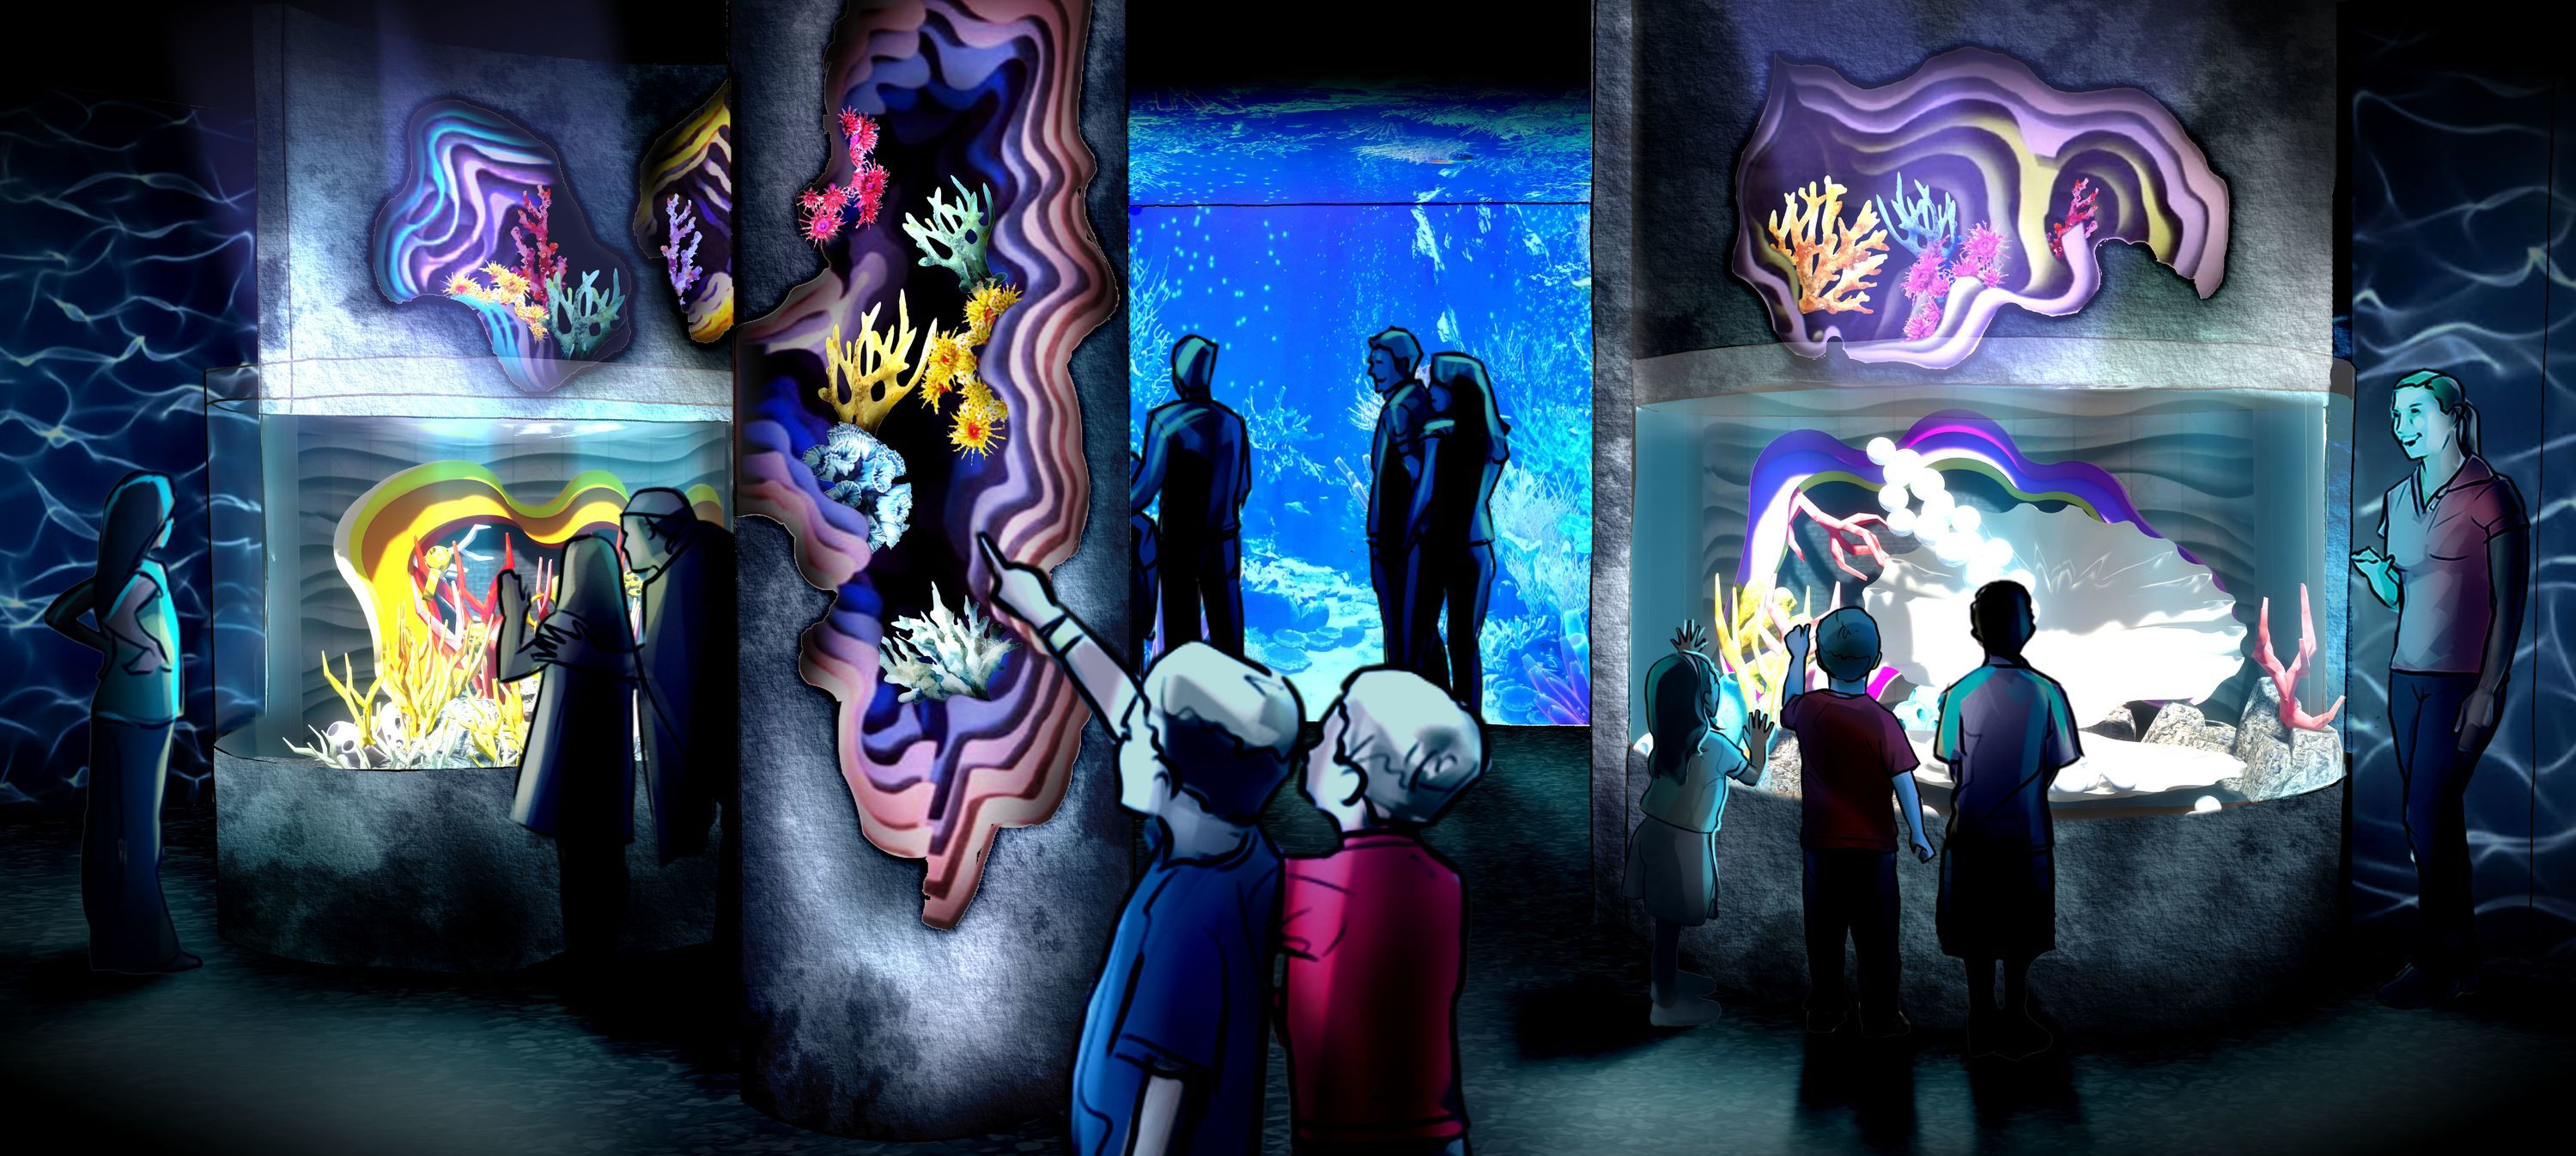 Visit the northeast's first SEA LIFE Aquarium